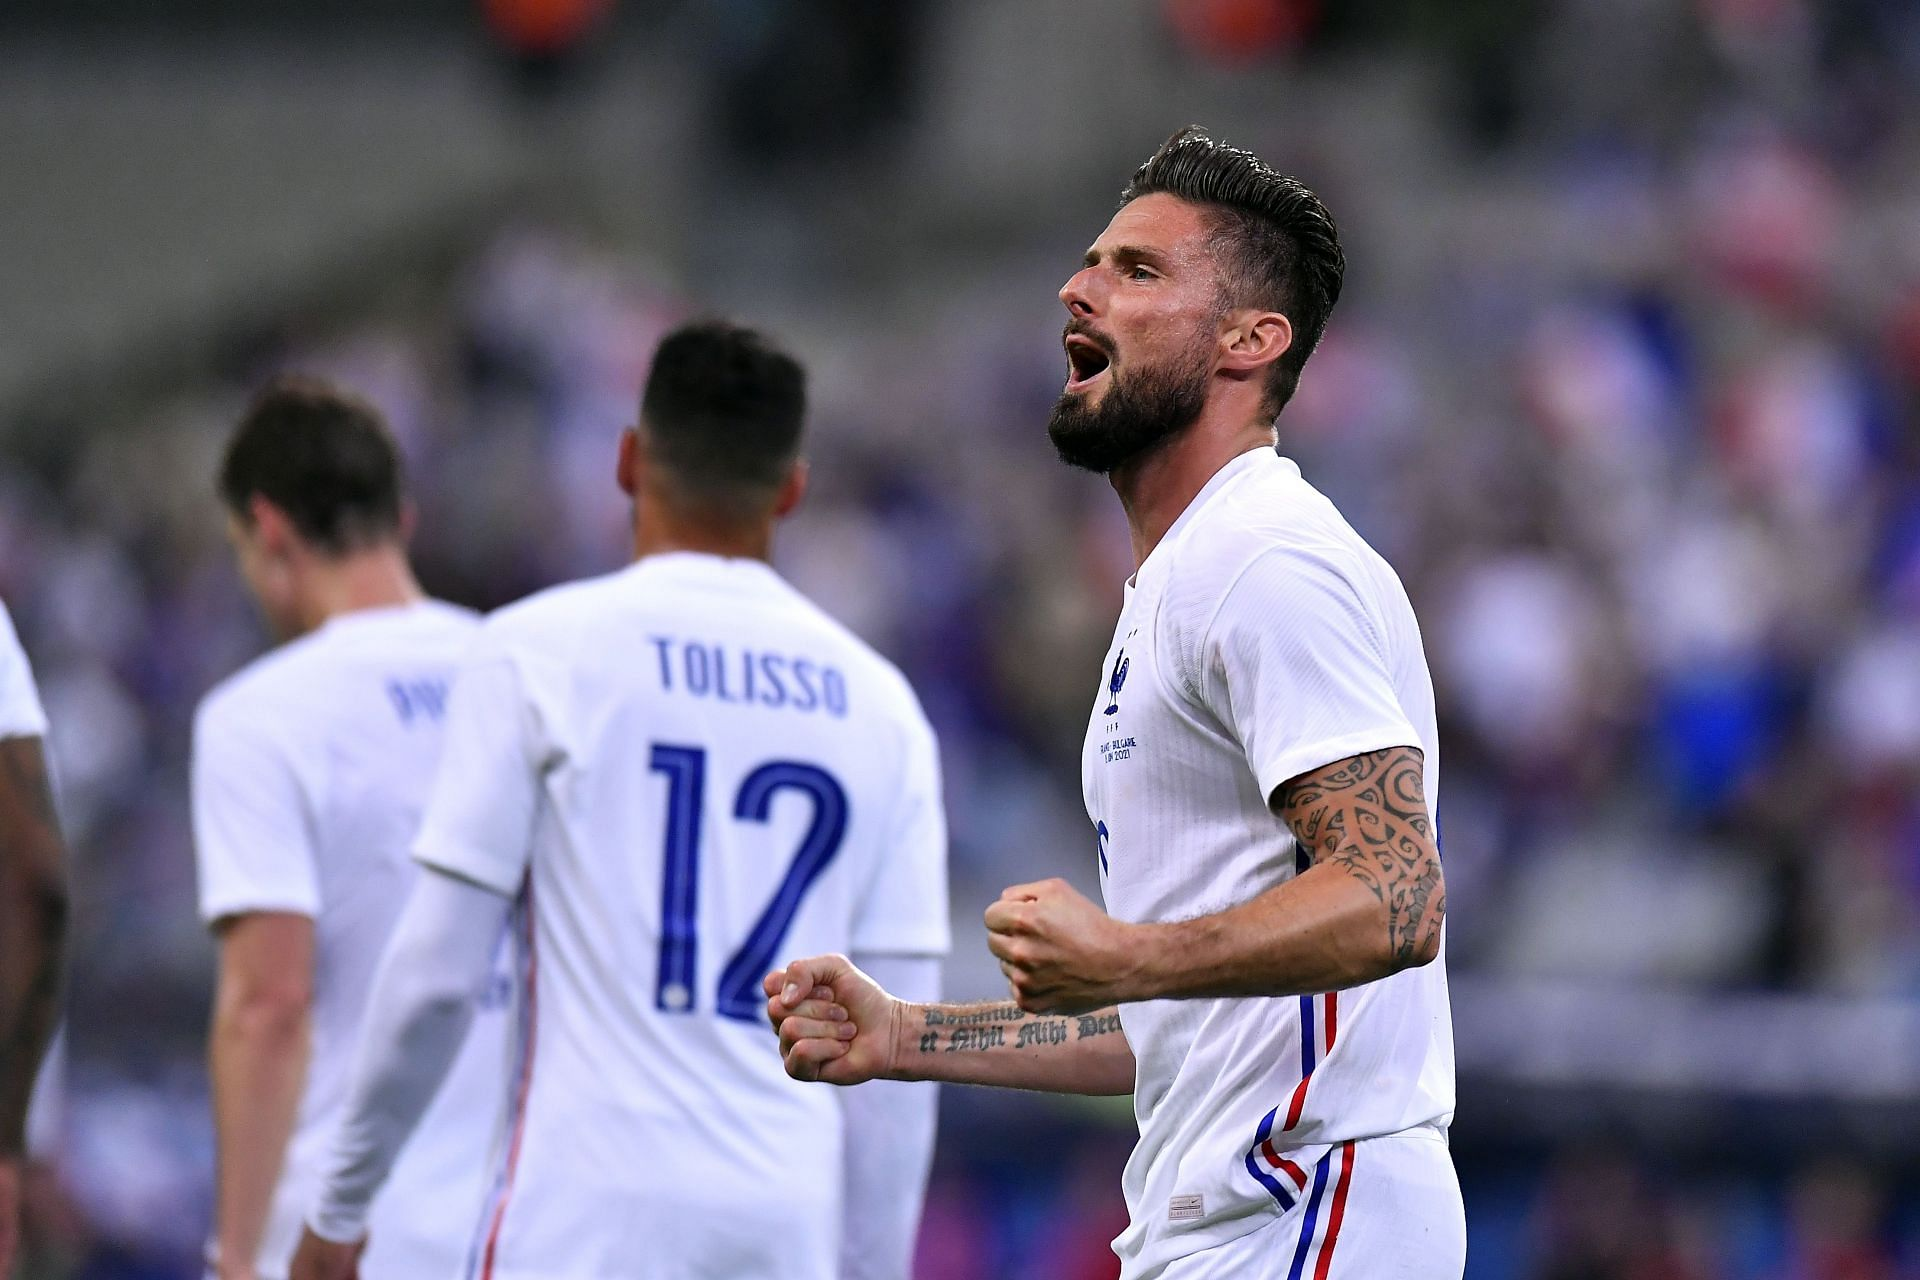 Olivier Giroud believes Thomas Tuchel has brought back serenity and confidence to Chelsea.